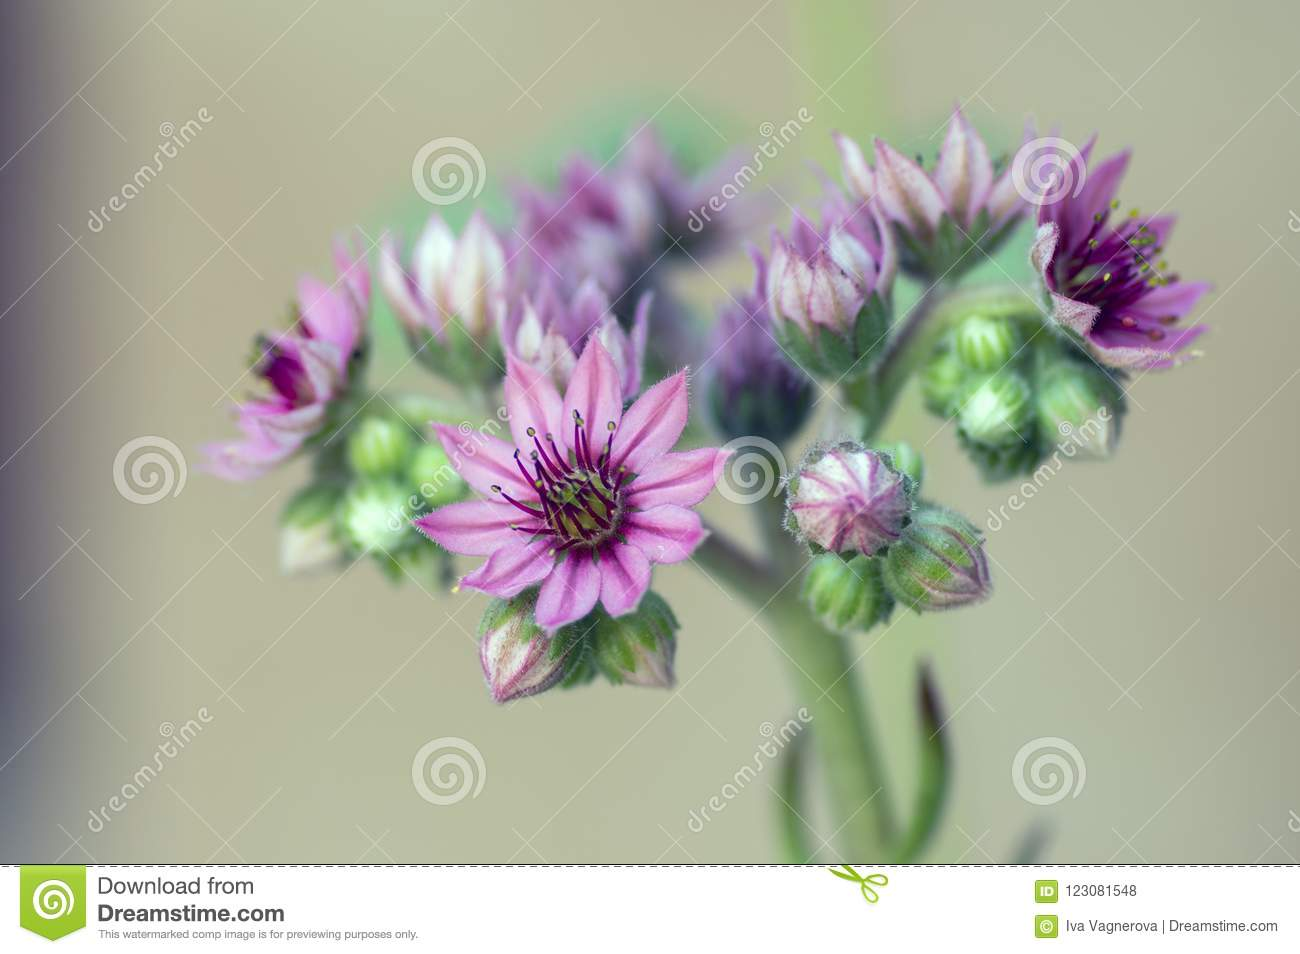 Sempervivum arachnoideum perennial flowering plant bright pink download sempervivum arachnoideum perennial flowering plant bright pink flowers stock photo image of floral mightylinksfo